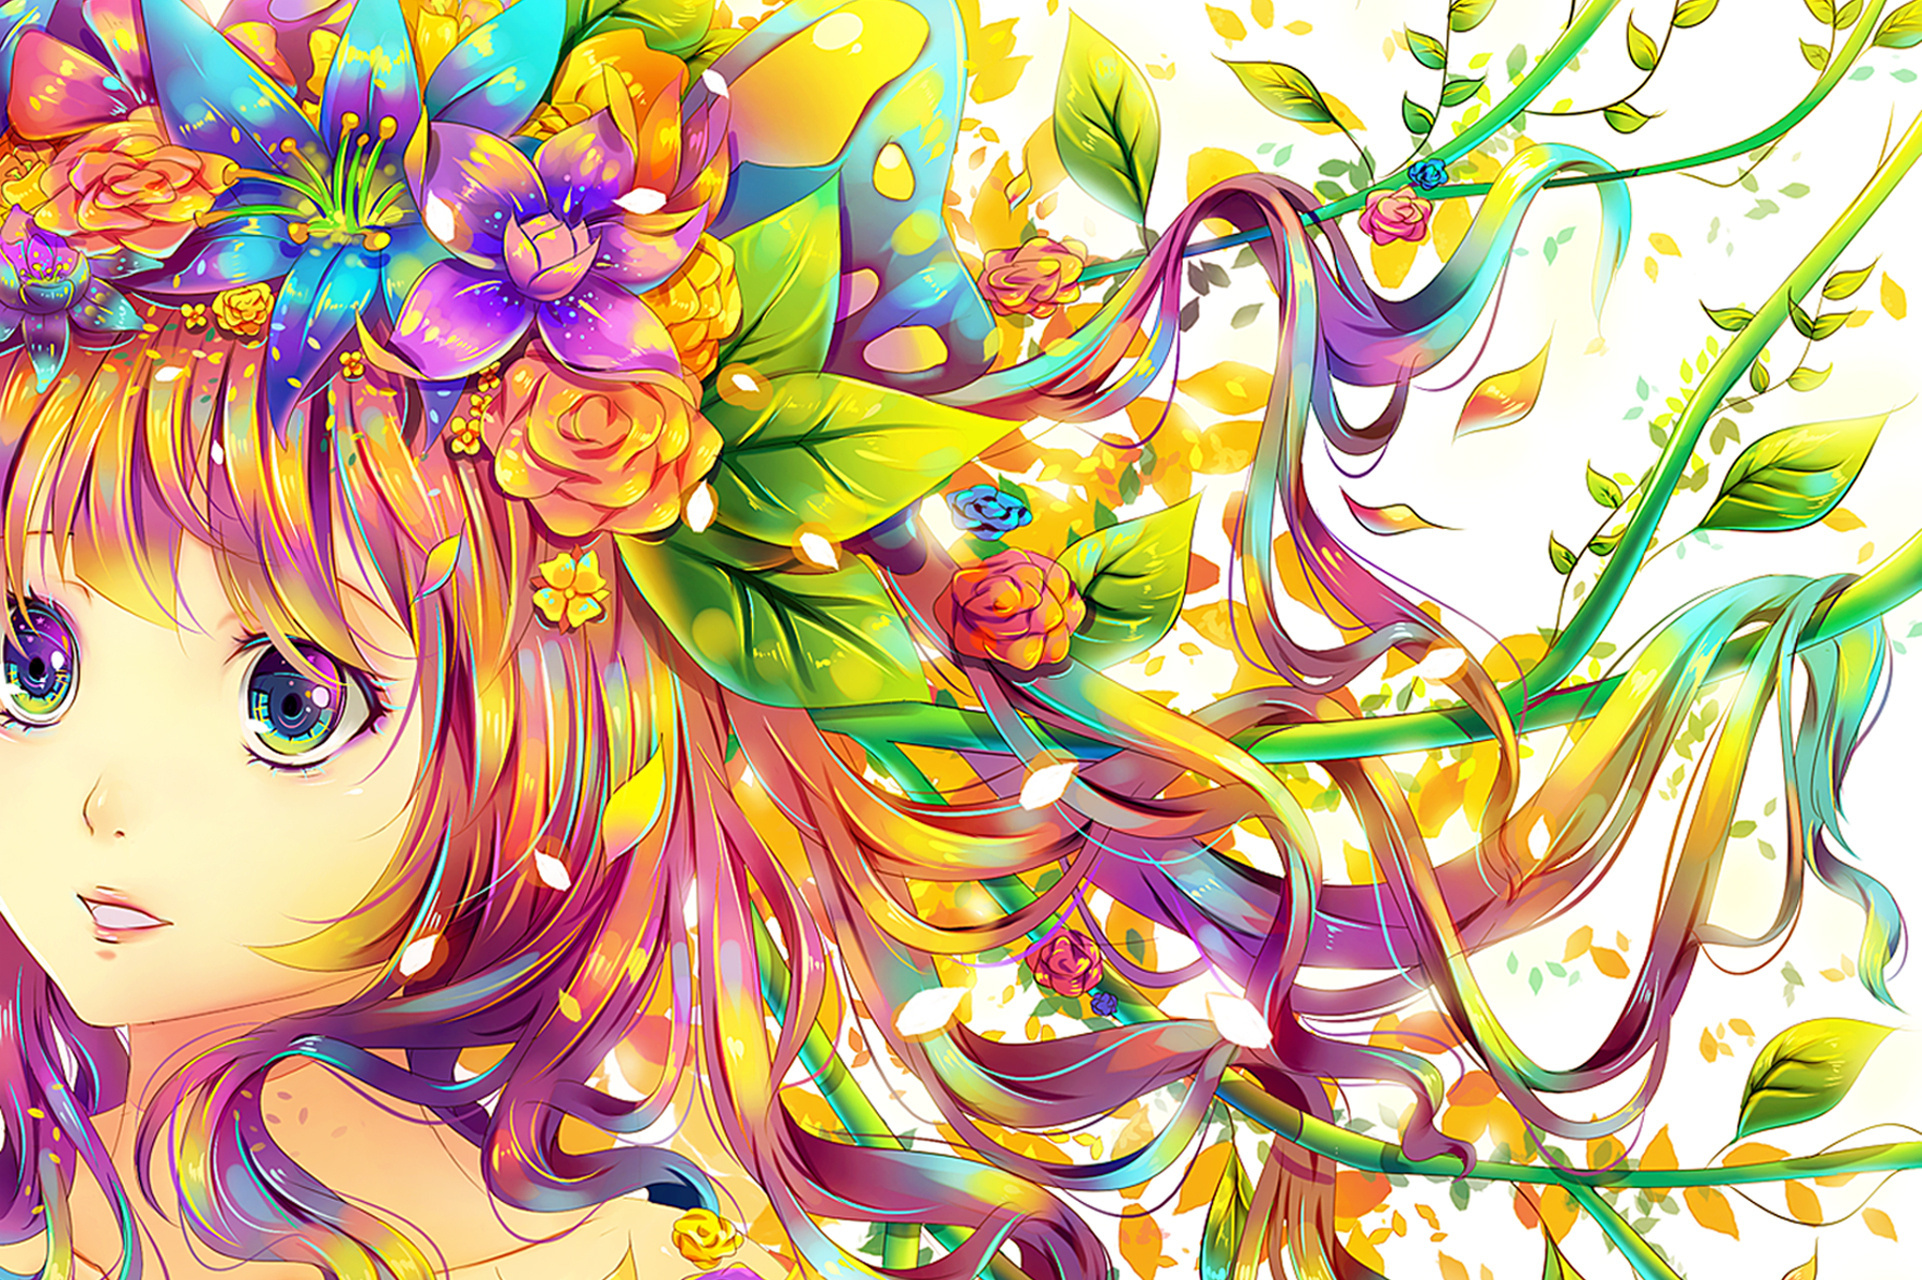 Paint Rainbow Girl Wallpapers: Http://hitsukuya.deviantart.com/#/d54qspm Full HD